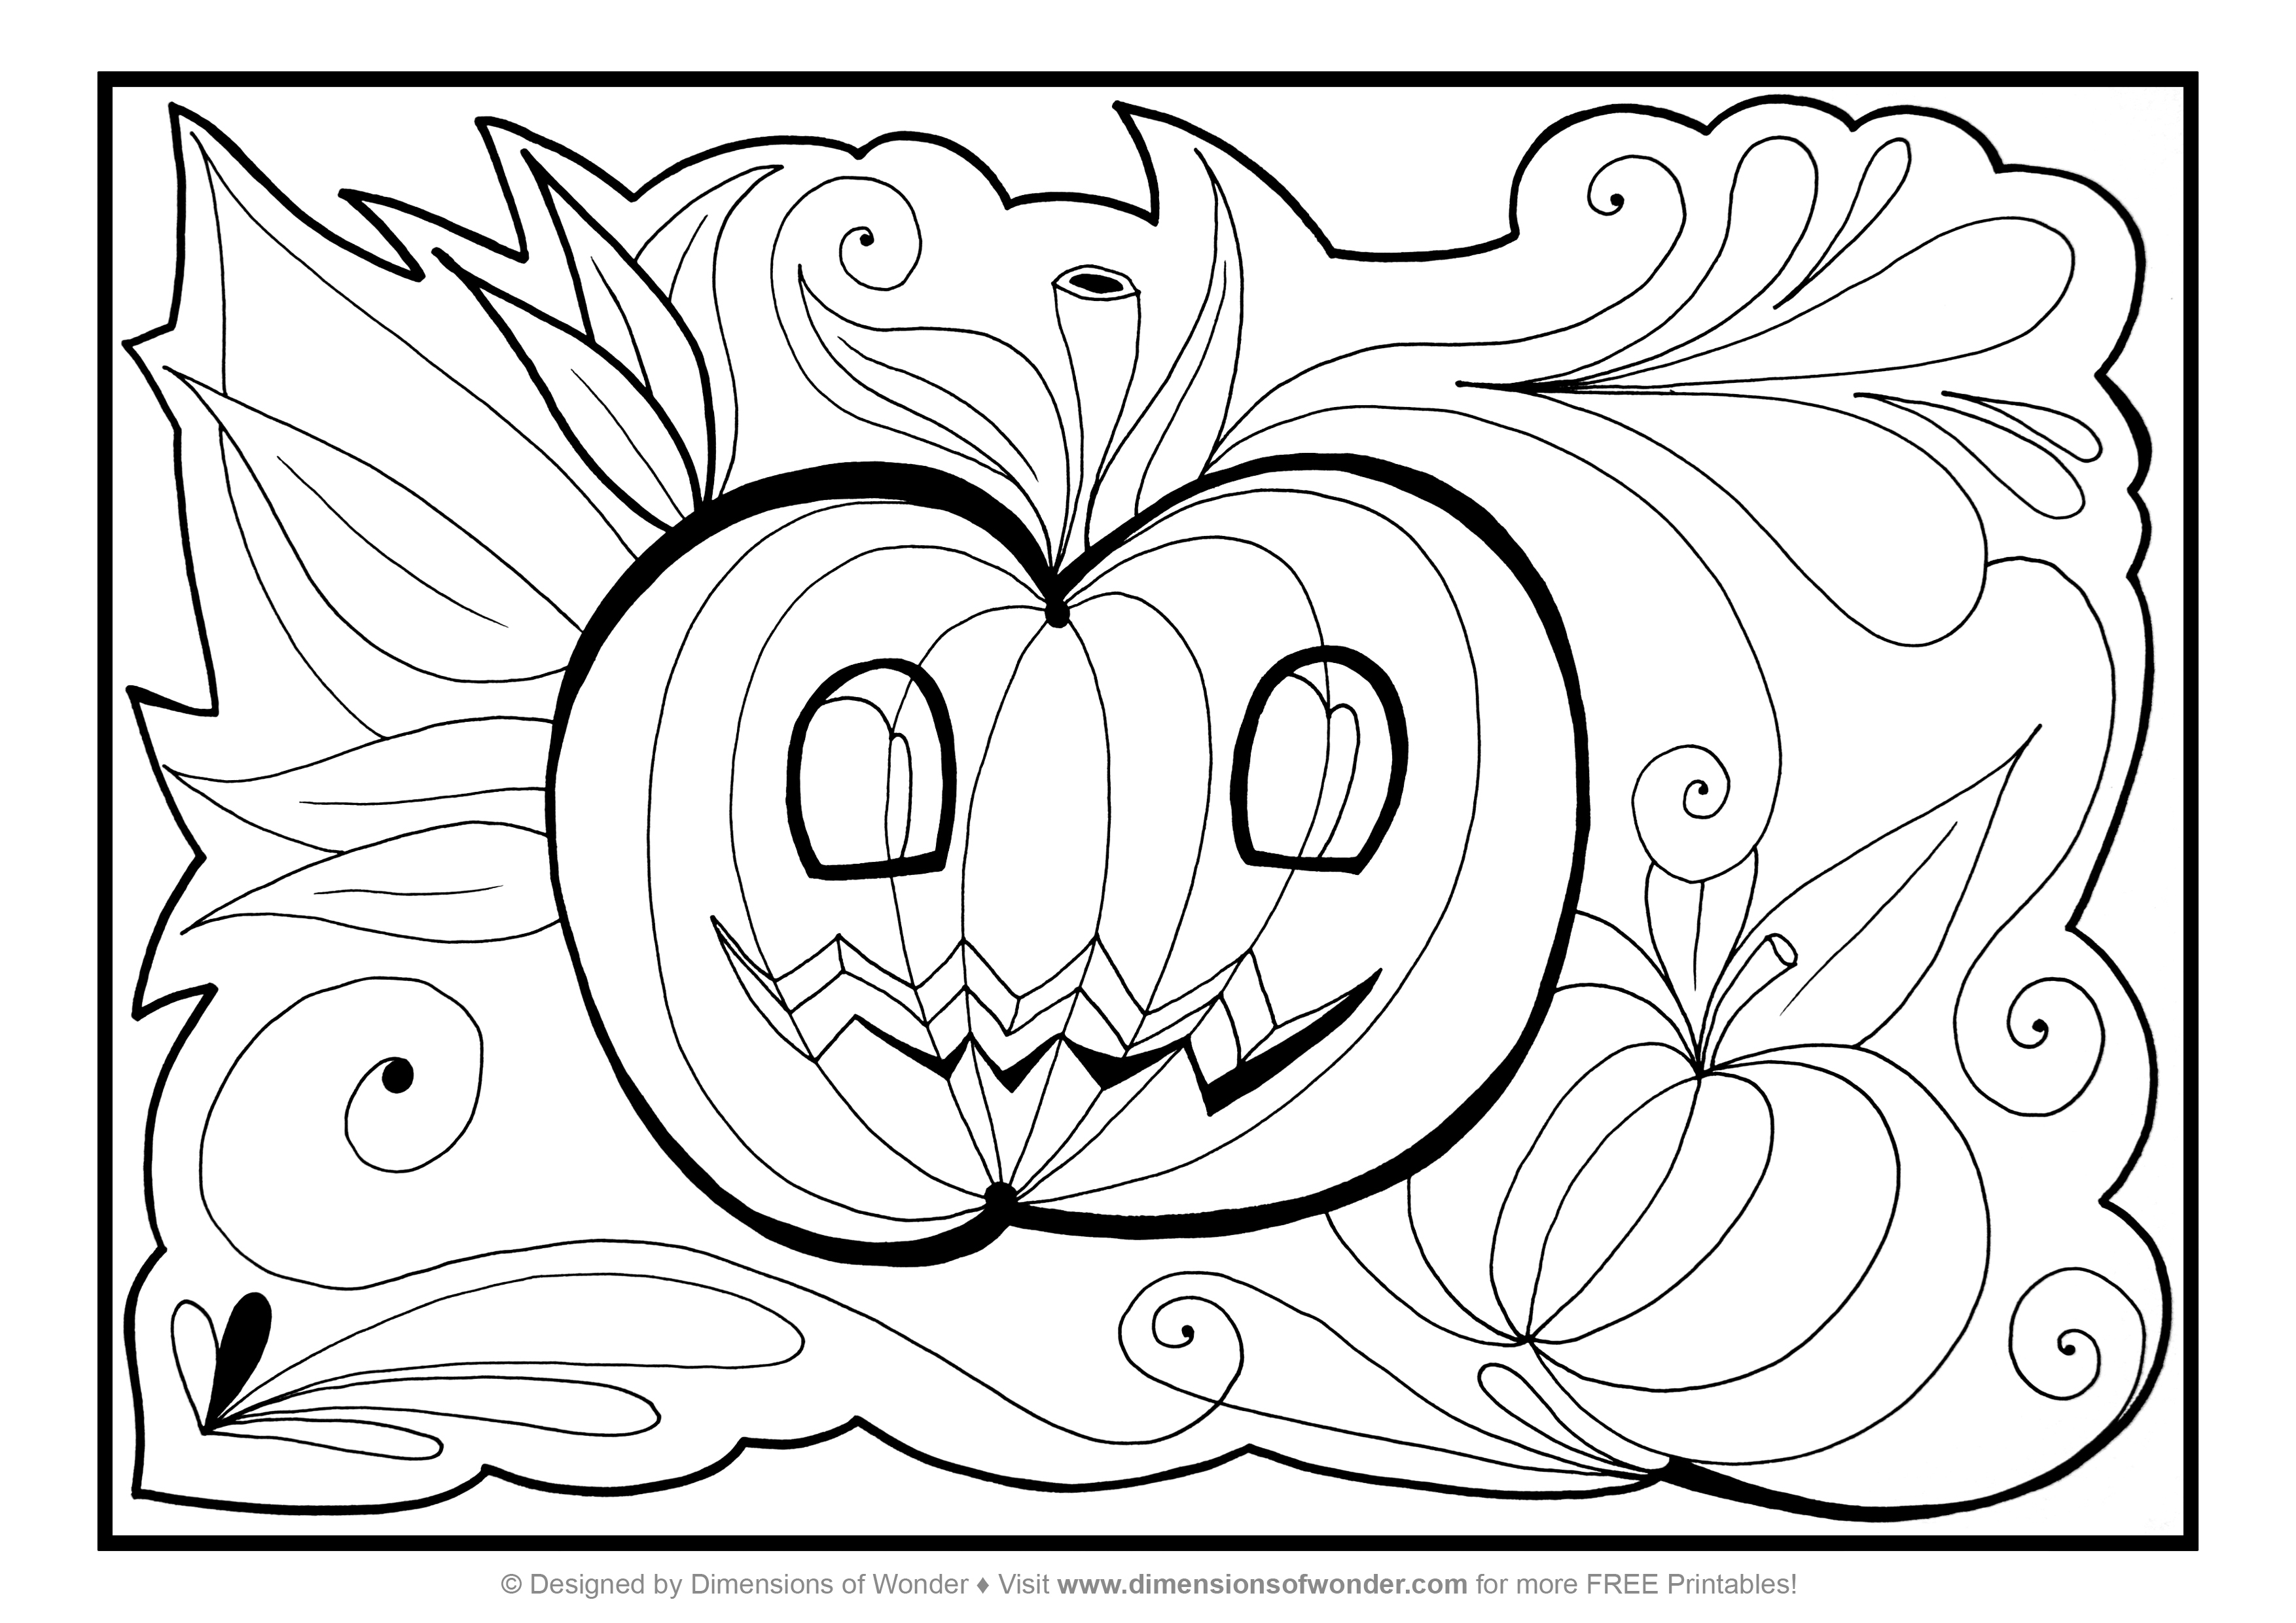 Pdf Coloring Pages For Kids Coloring Ideas Freeoloring Sheets Pdf The Art Jinni Pages Ideas